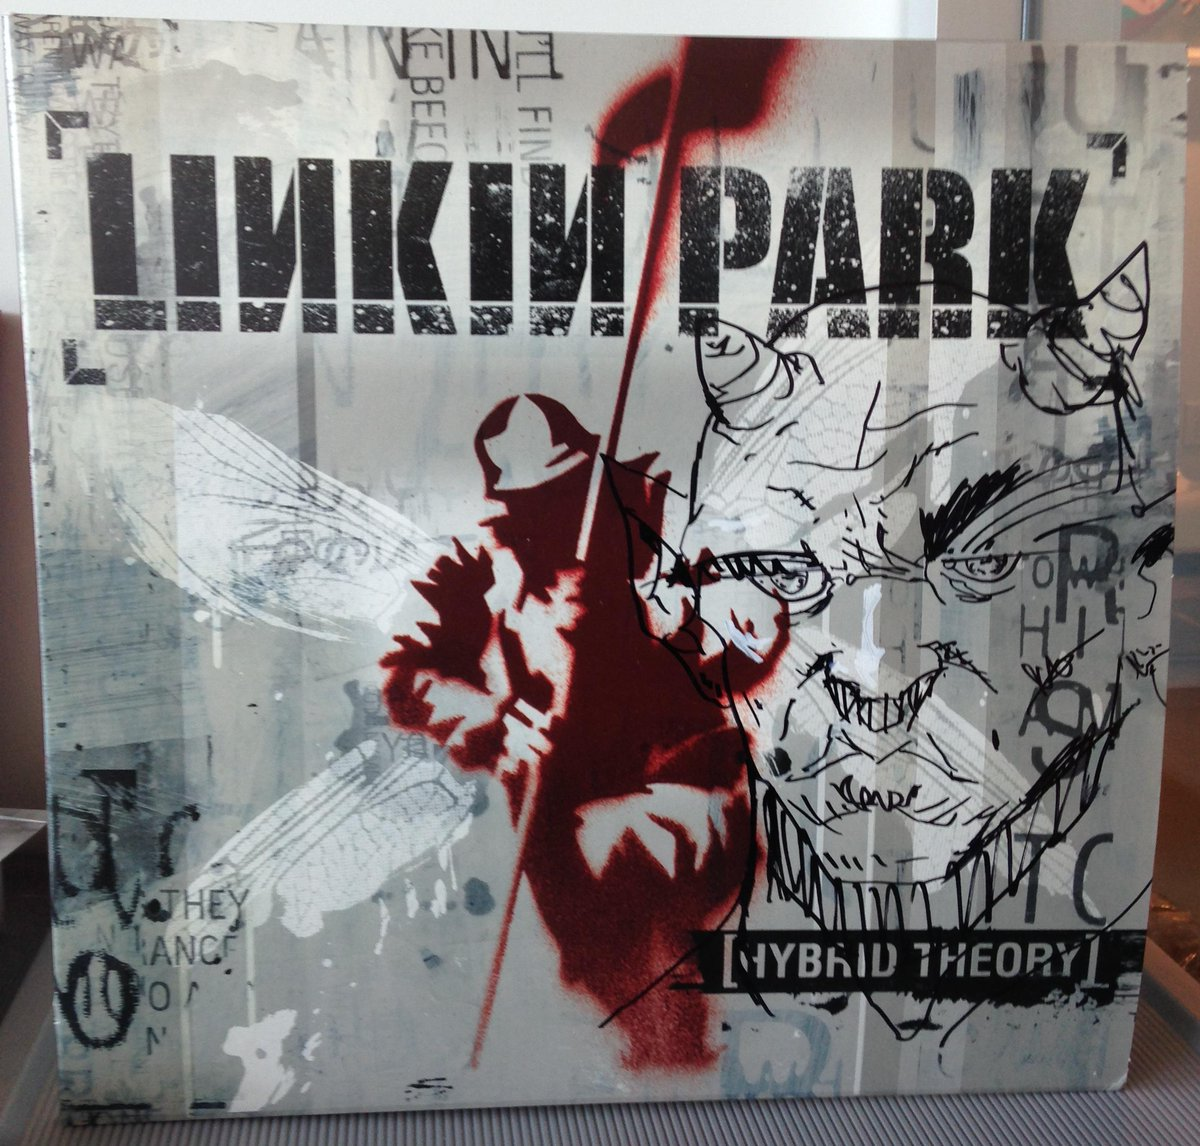 Collect @LinkinPark's rare 2000 #HybridTheory vinyl album w/ hand-drawn artwork by @joehahnLP http://t.co/2xRKOawqmA http://t.co/hLSWOzTmZO